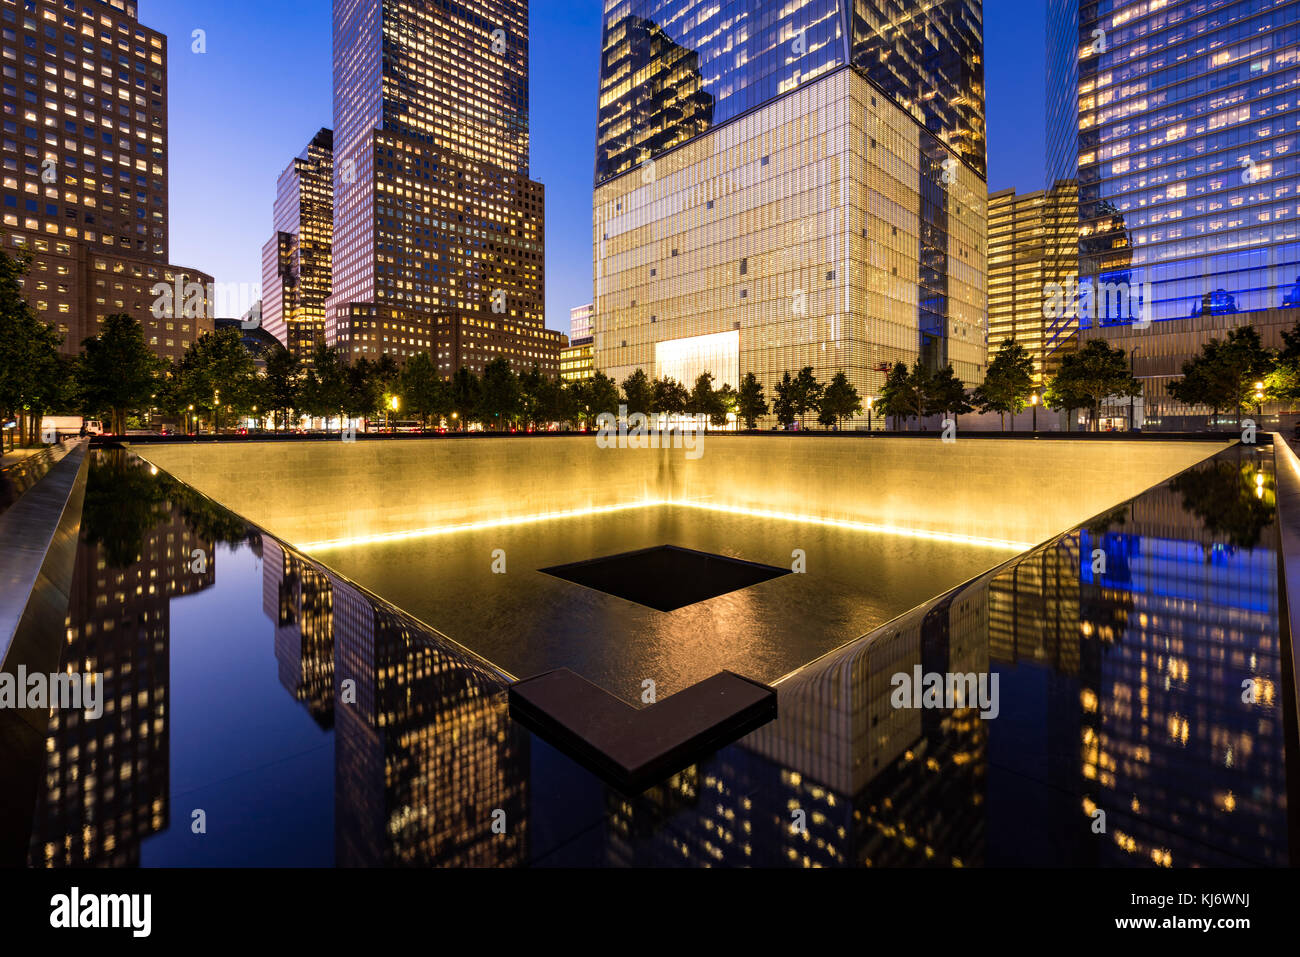 The North Reflecting Pool illuminated at twilight with view of One World Trade Center. Lower Manhattan, 9/11 Memorial & Museum, New York City Stock Photo